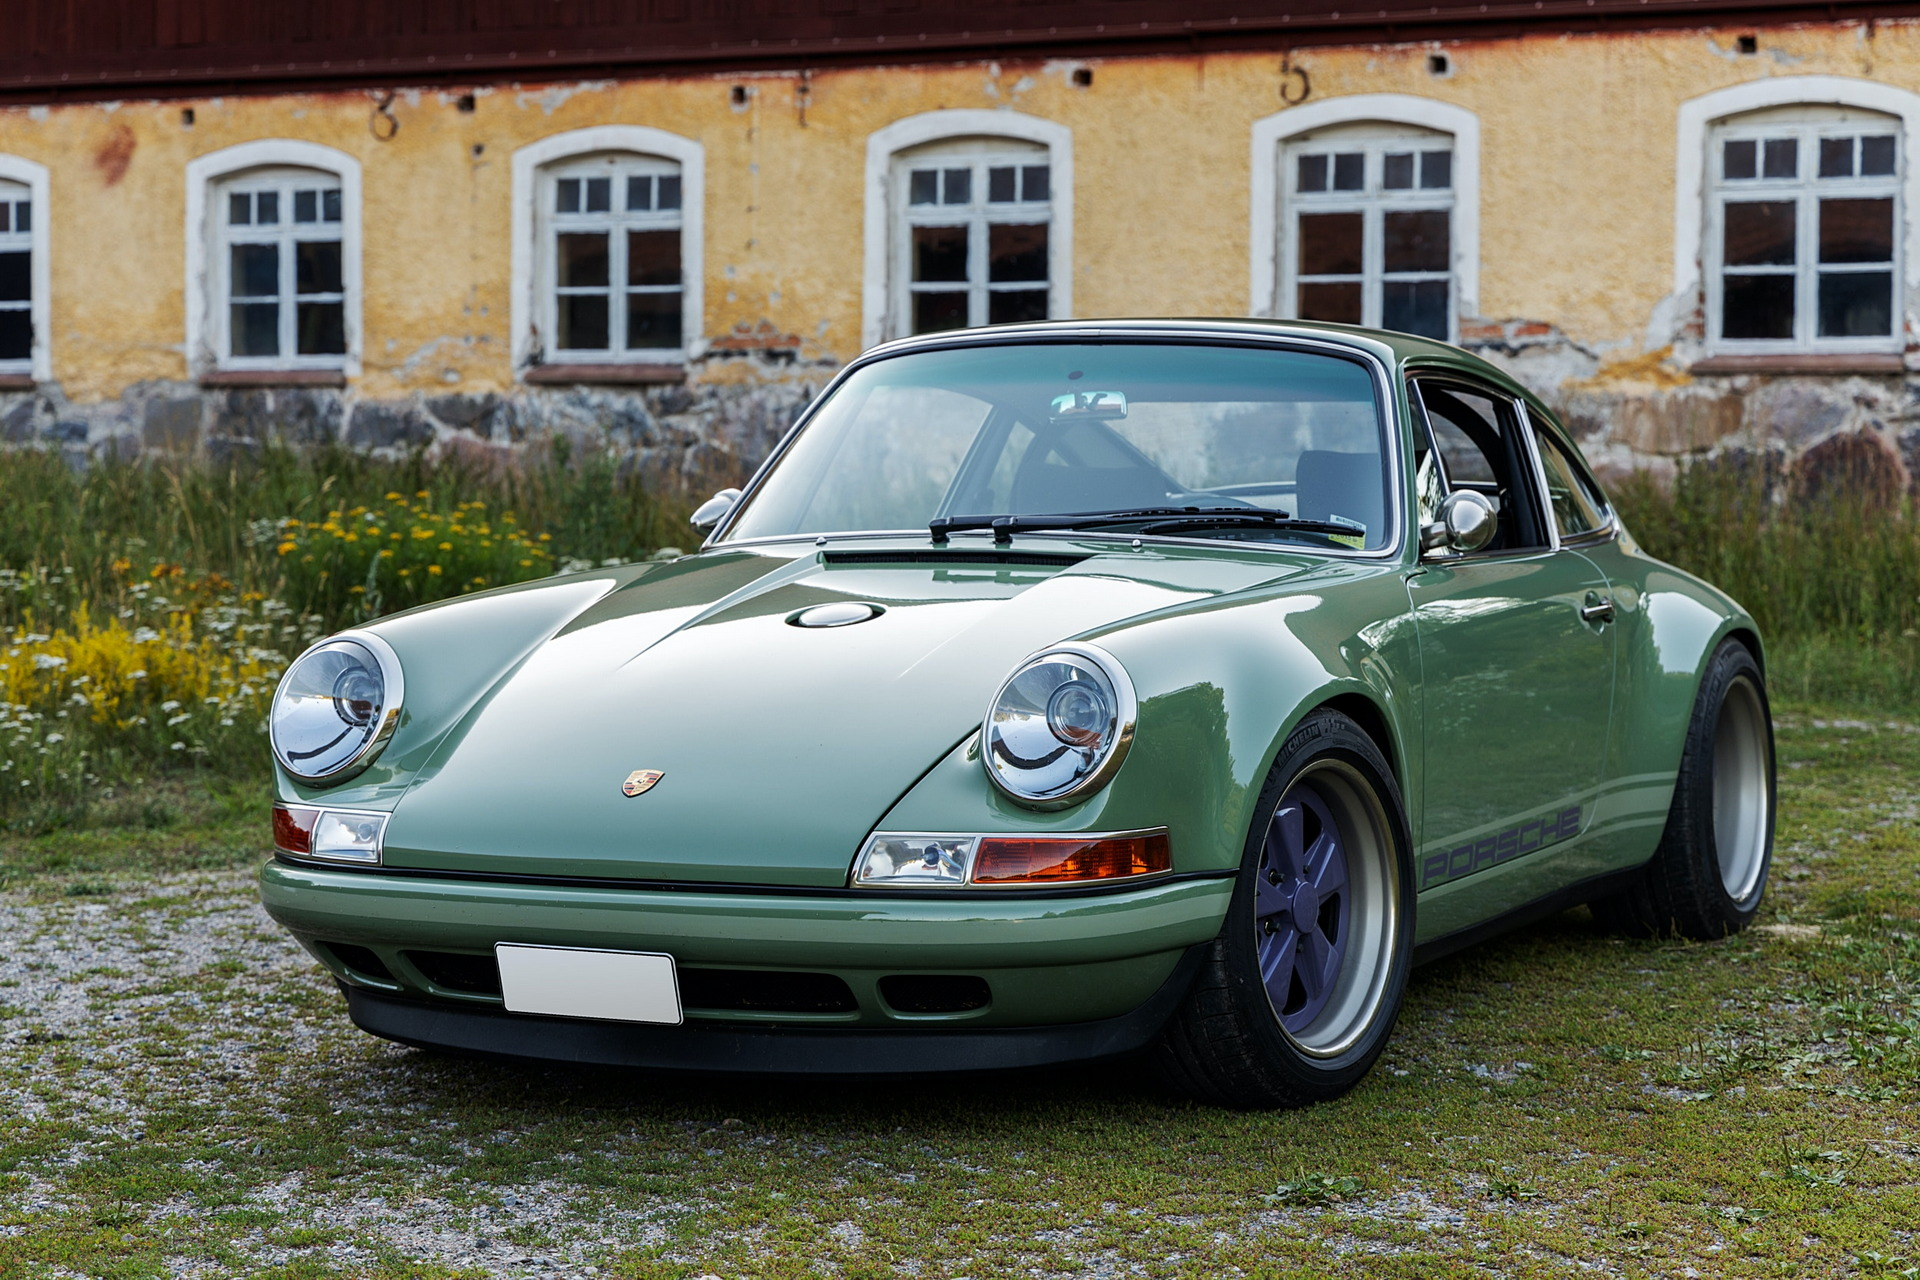 Singer Vehicle Design's meticulous and uncompromising approach to restoring classical Porsche cars has earned it a cult following and project costs stretching far into six-digit territory. This example is none other than the famous Brooklyn Commission, and it could be yours for over £500,000.